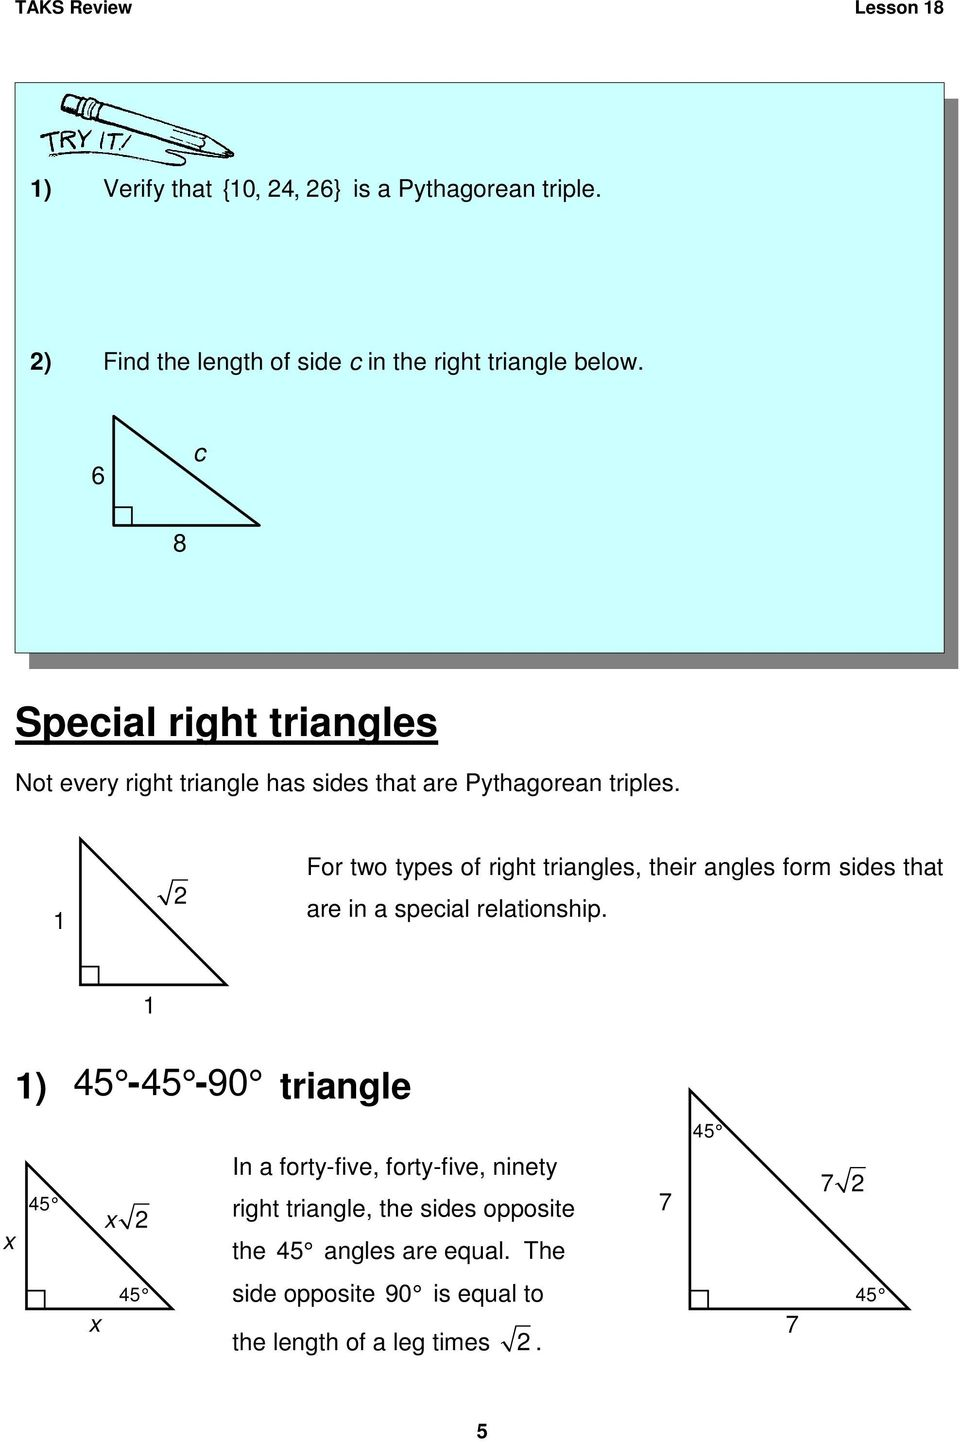 1 For two types of right triangles, their angles form sides that are in a special relationship.